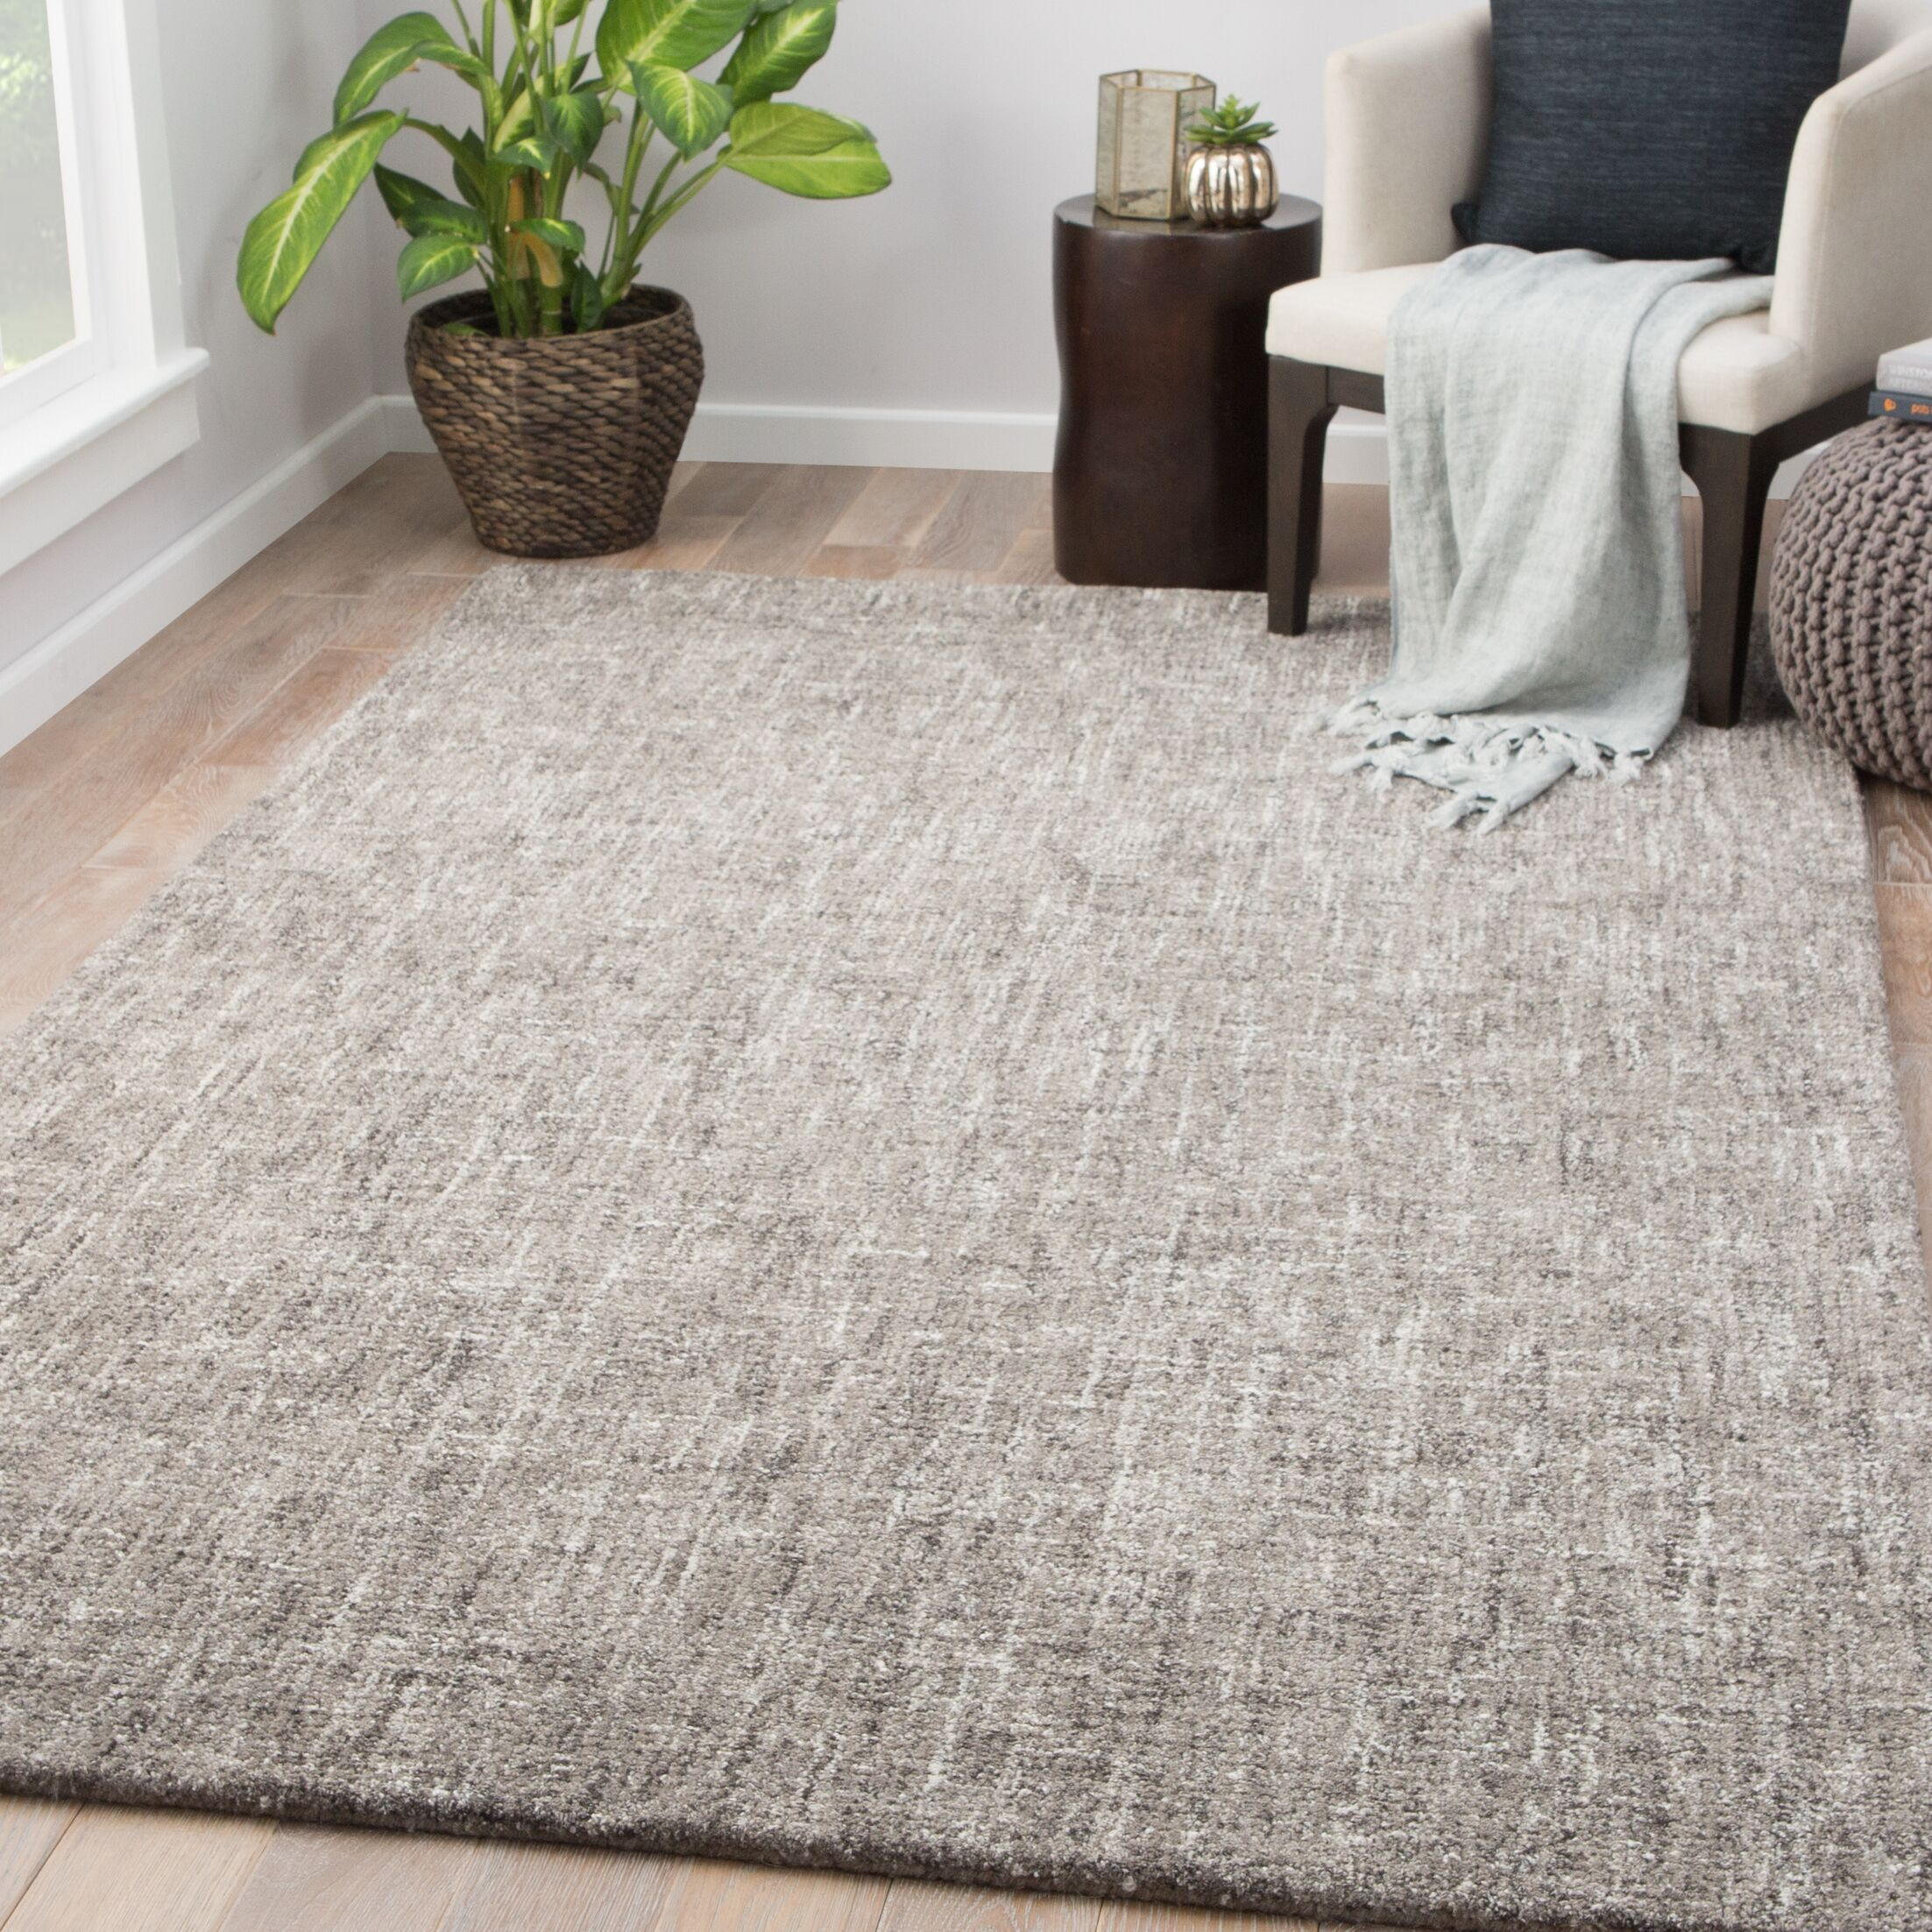 Widger Hand-Tufted Fallen Rock/Pumice Stone Area Rug Rug Size: Rectangle 2' x 3'